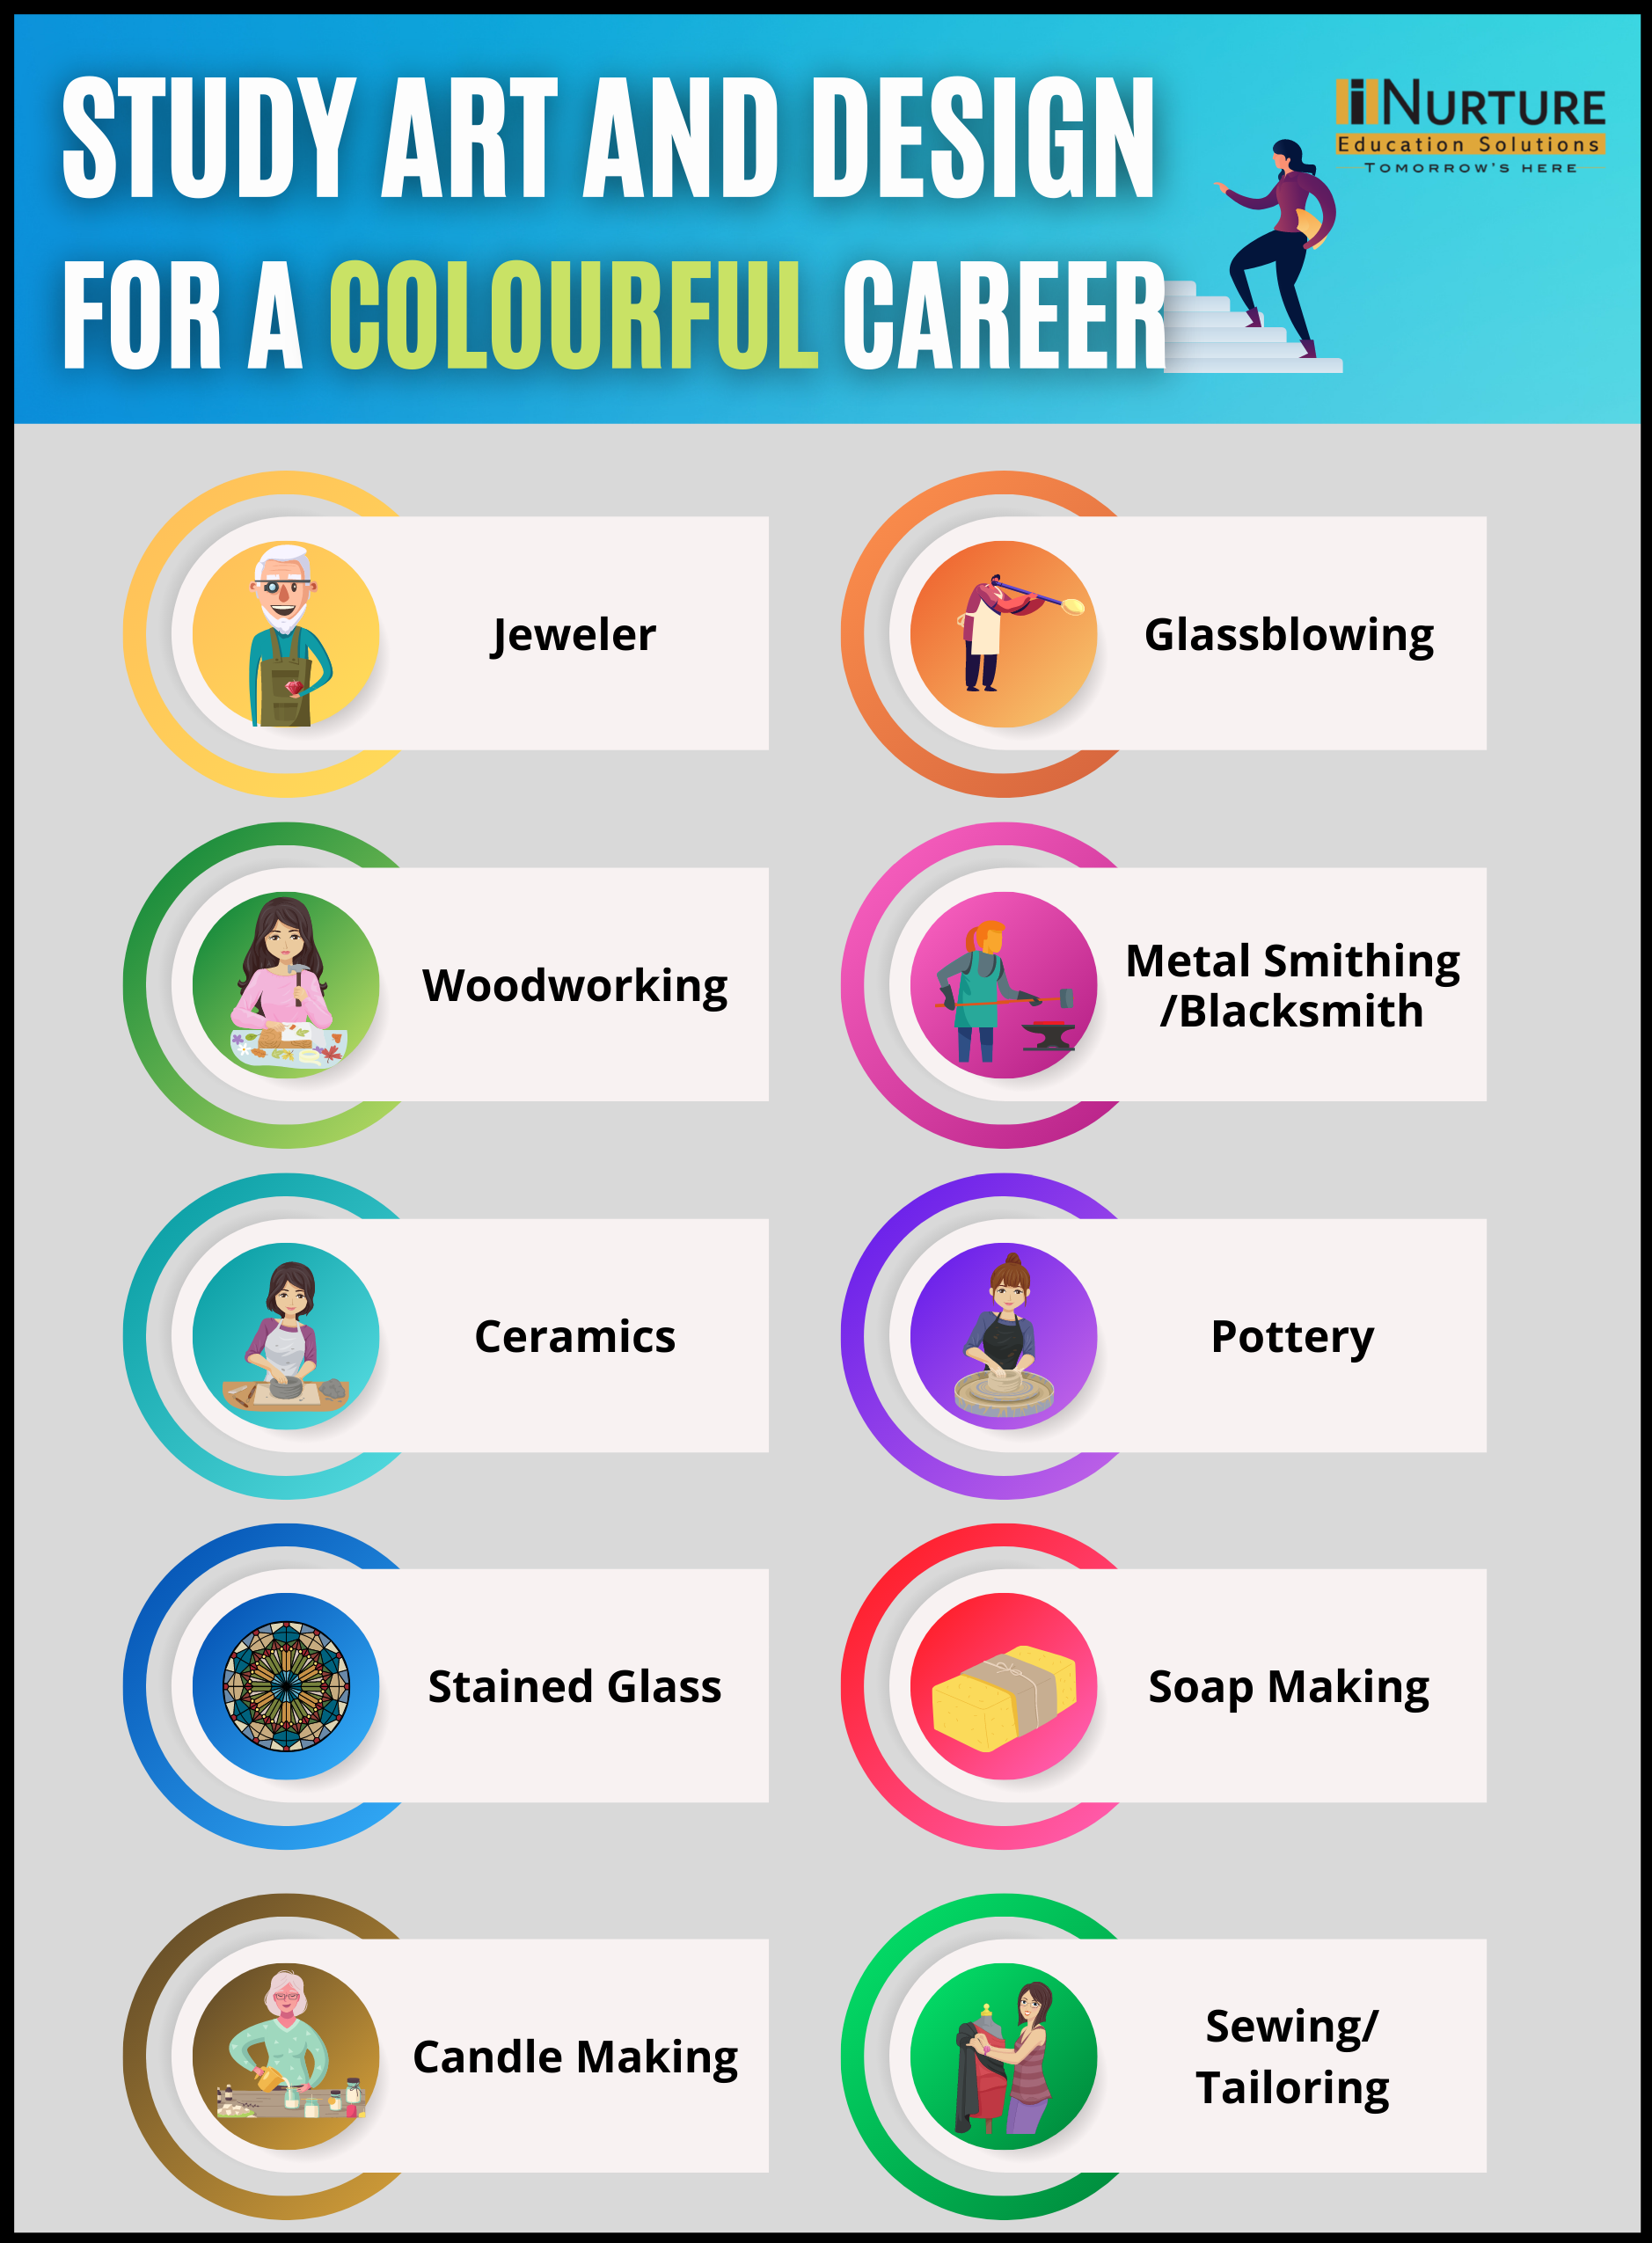 Study Art and Design for a colourful Career